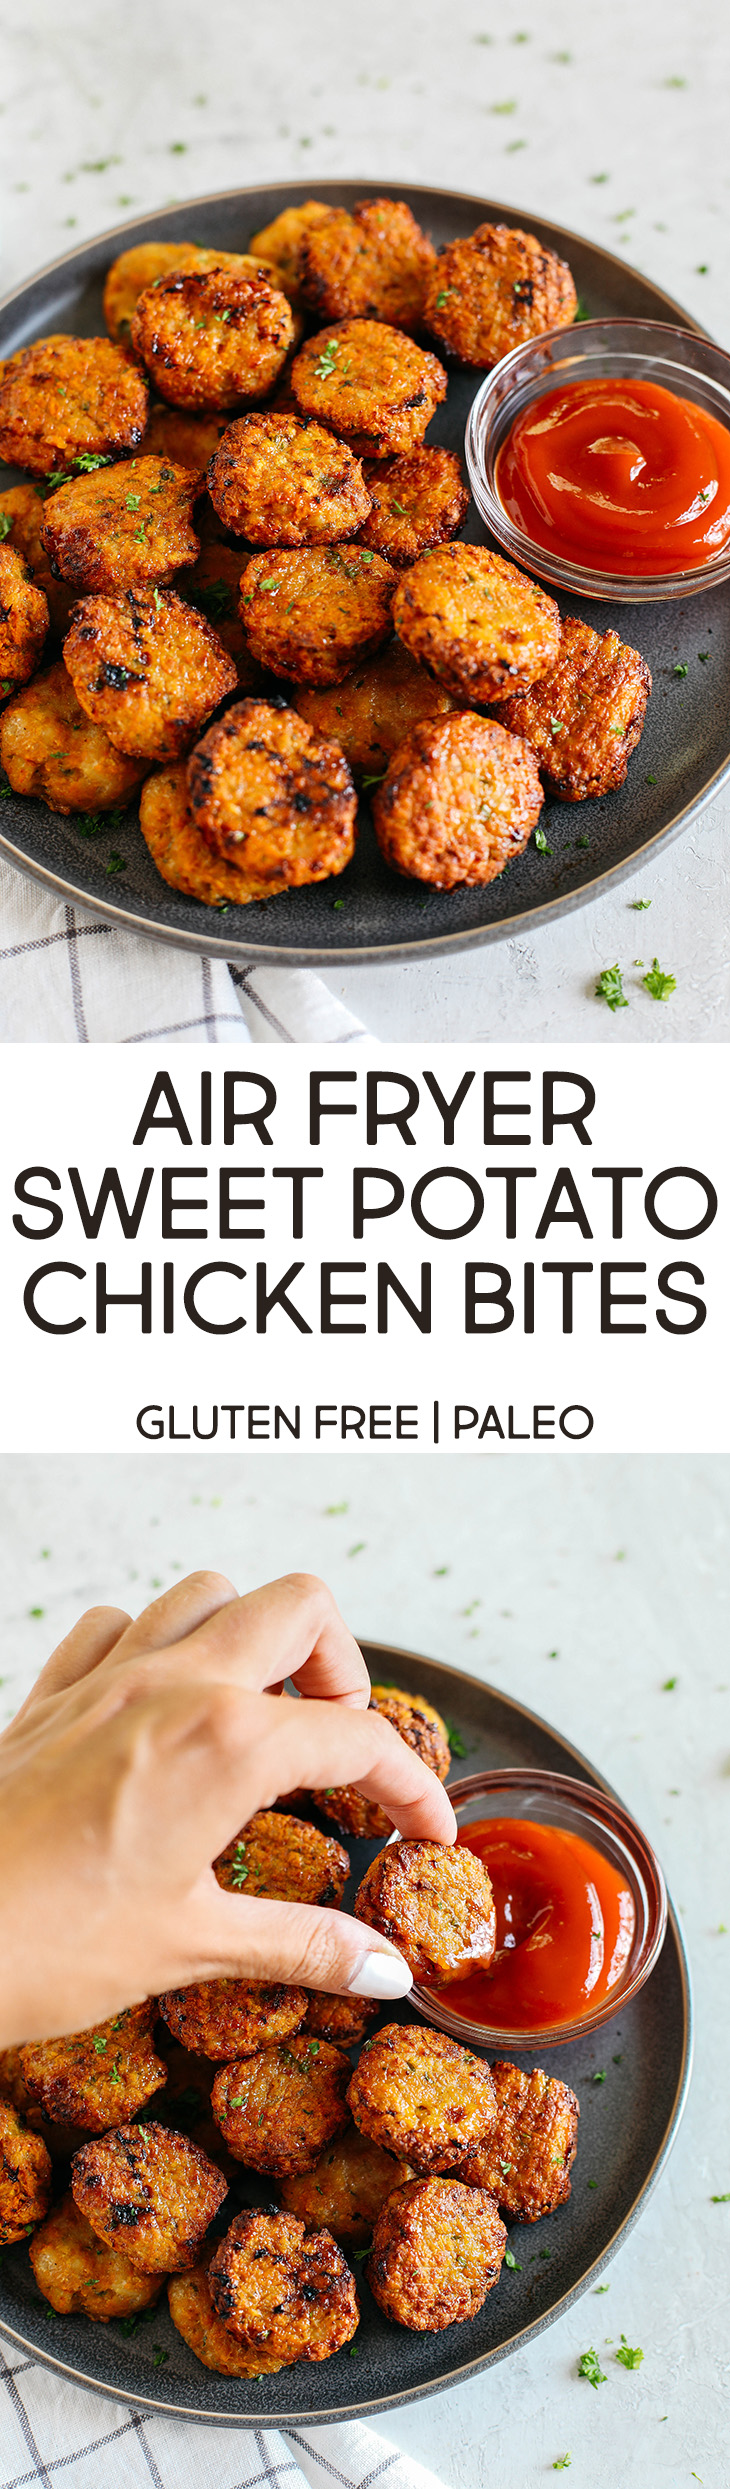 These bite-sized Sweet Potato Chicken Bites are flavorful, delicious and made right in the air fryer for a perfectly crispy (and healthy!) alternative to chicken nuggets!